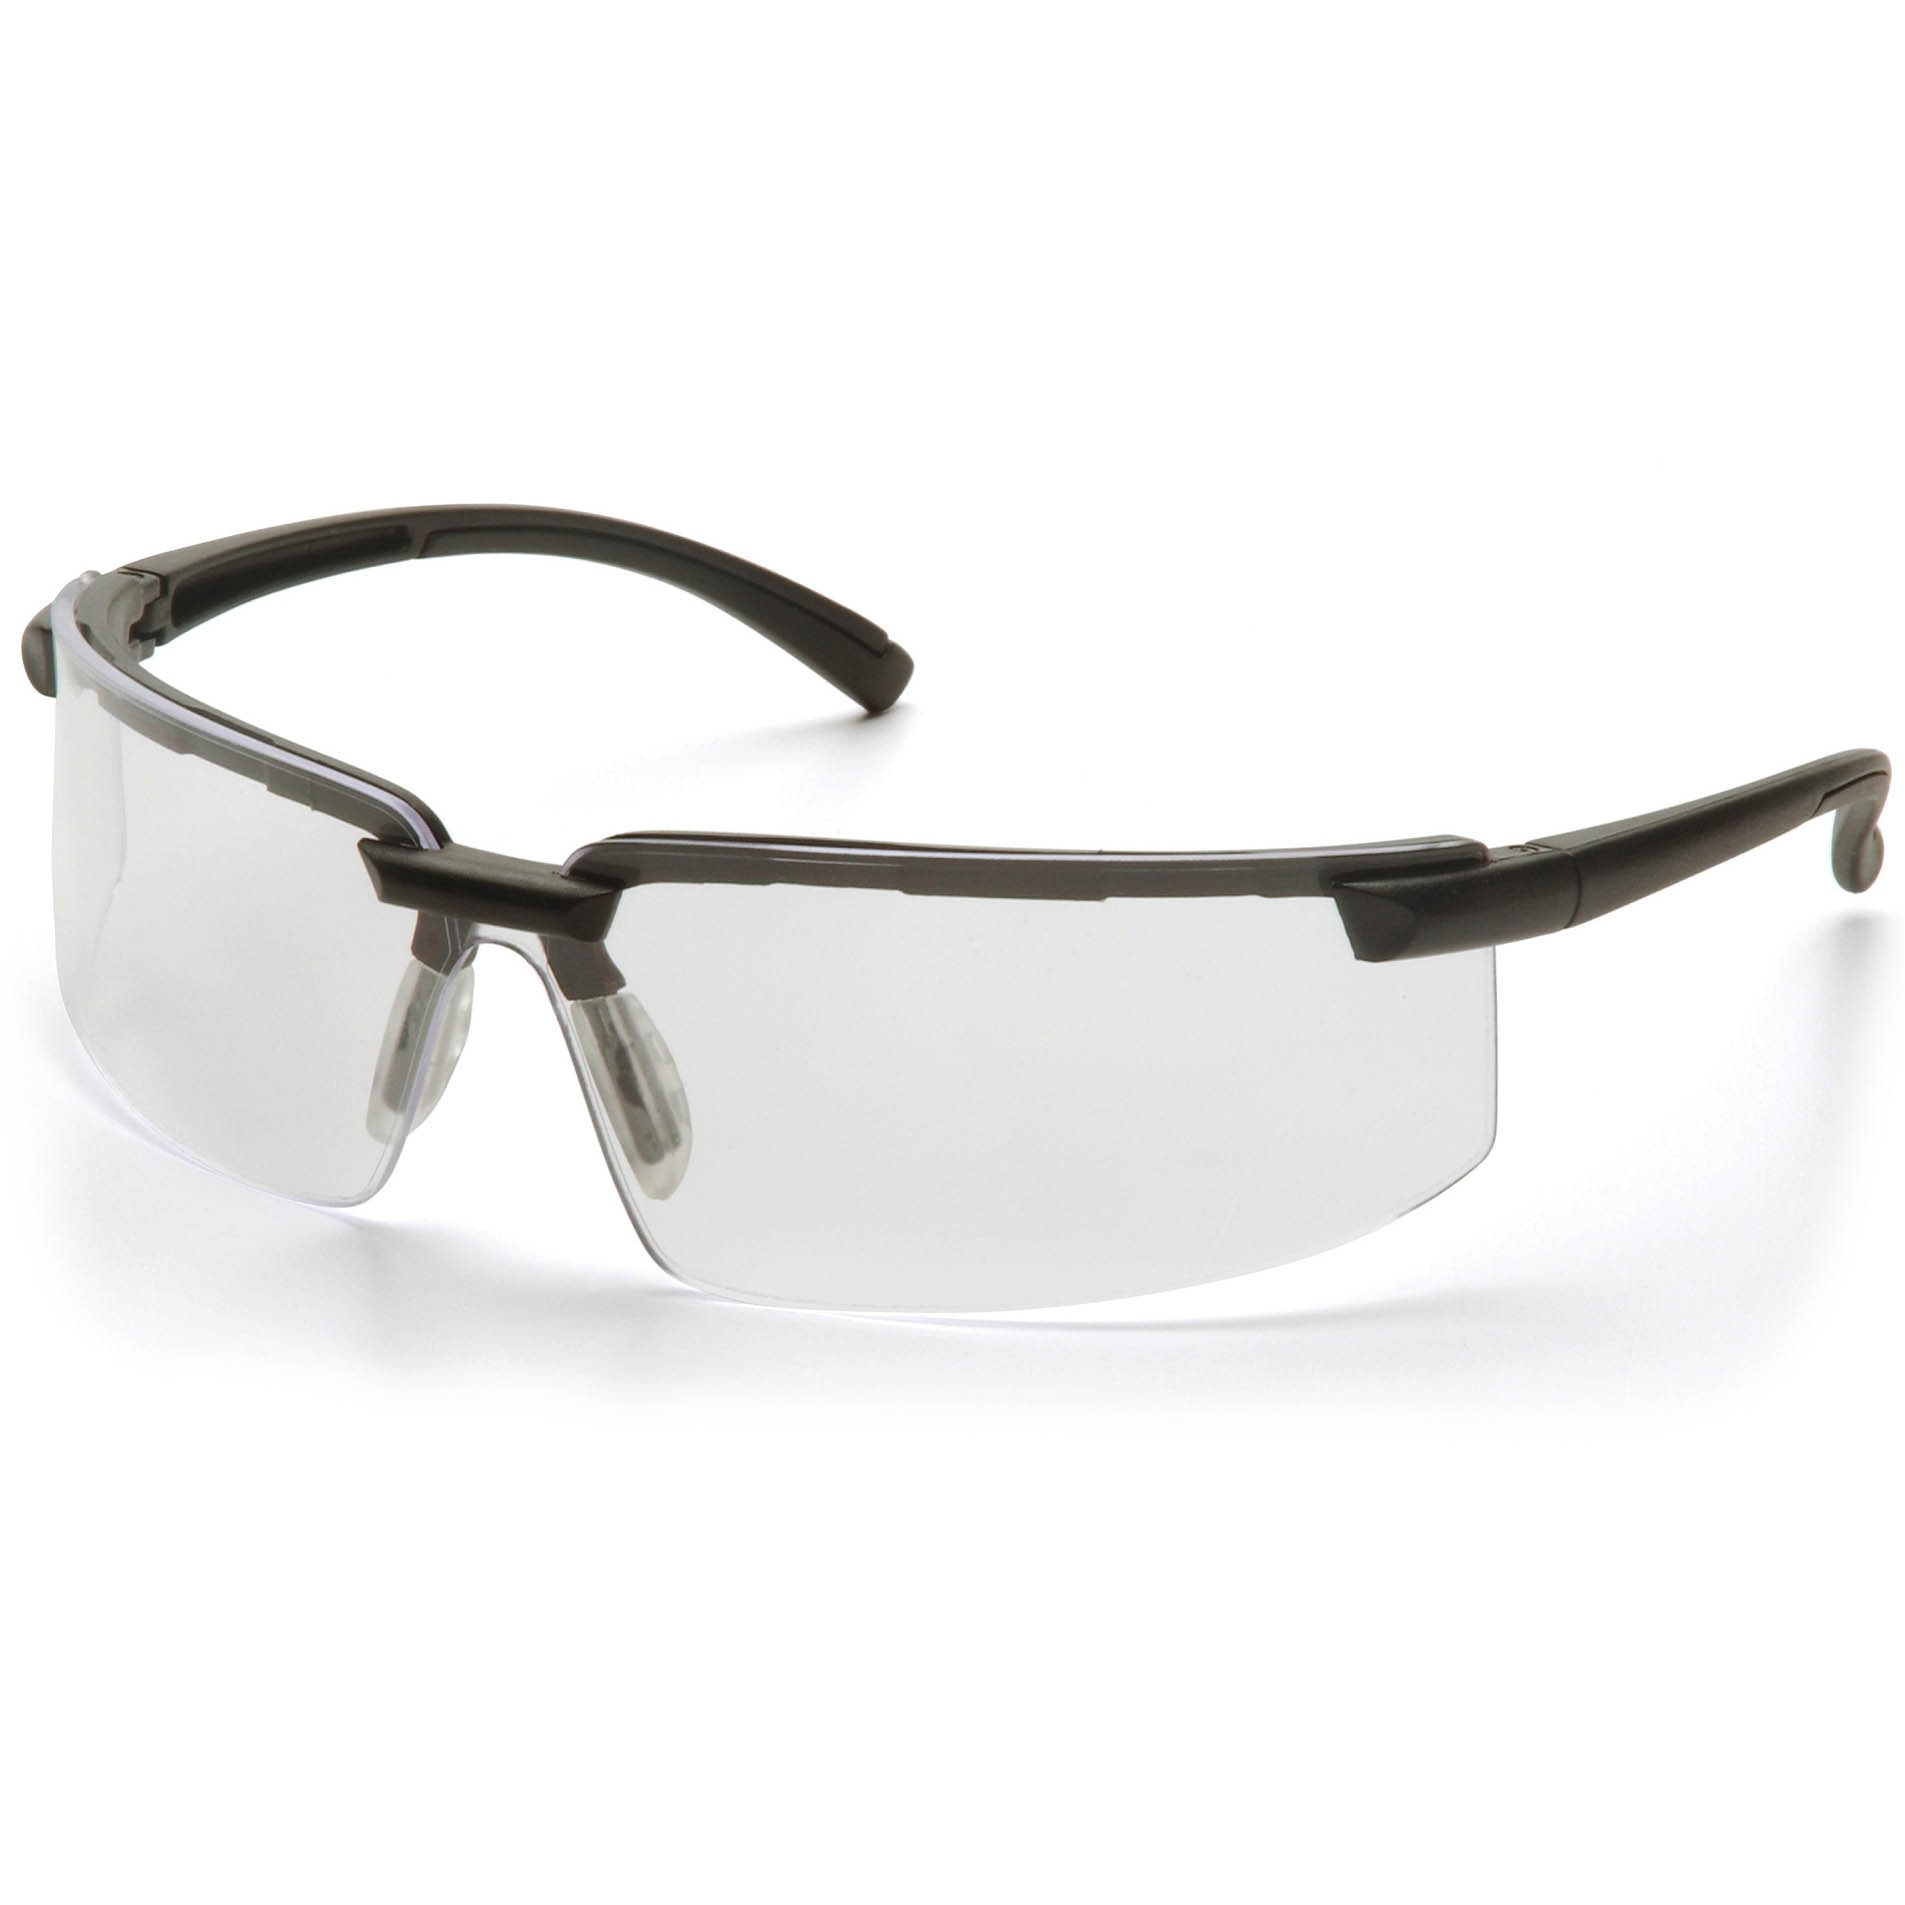 Black Frame Glasses With Clear Lenses : Pyramex Surveyor Safety Glasses - Black Frame - Clear Lens ...